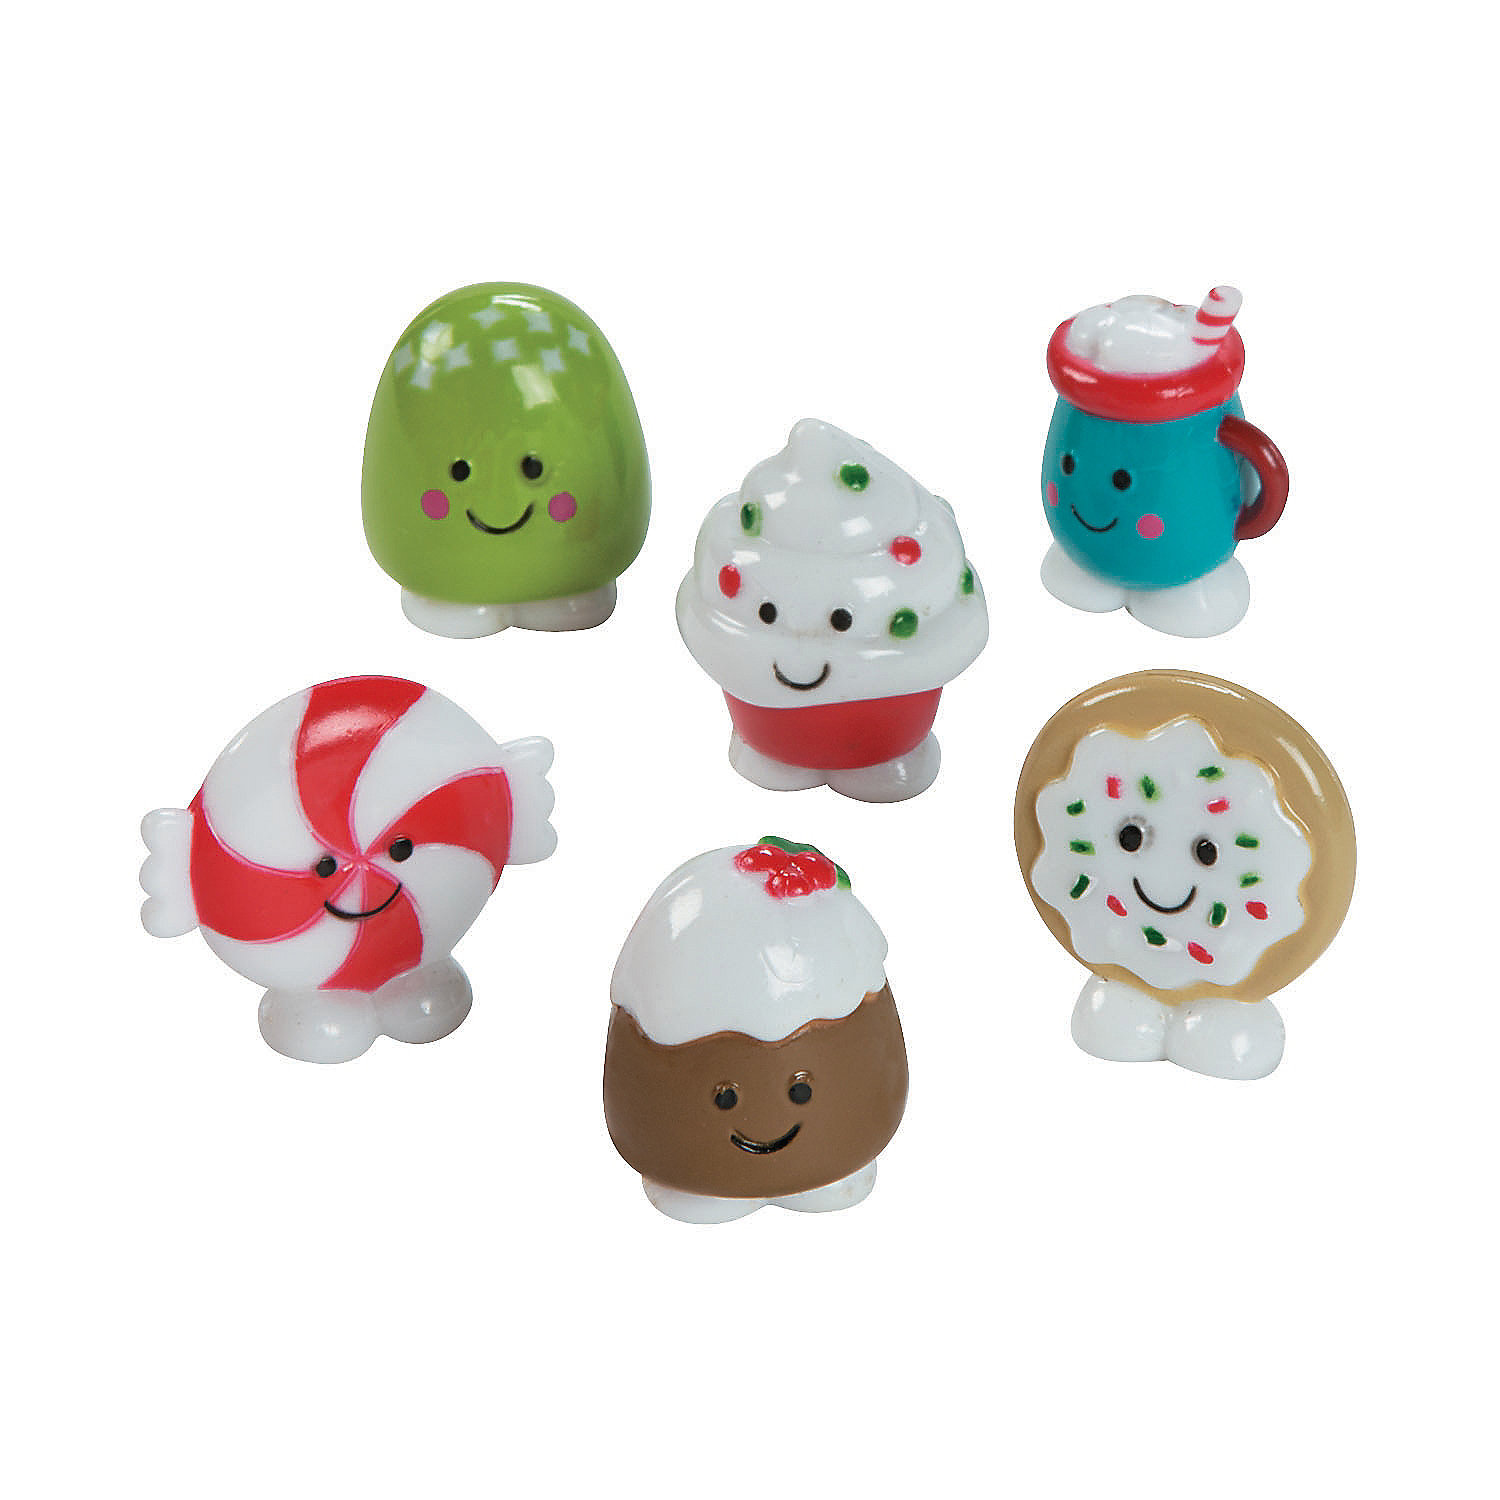 IN-13780564 Holiday Treat Characters Per Dozen